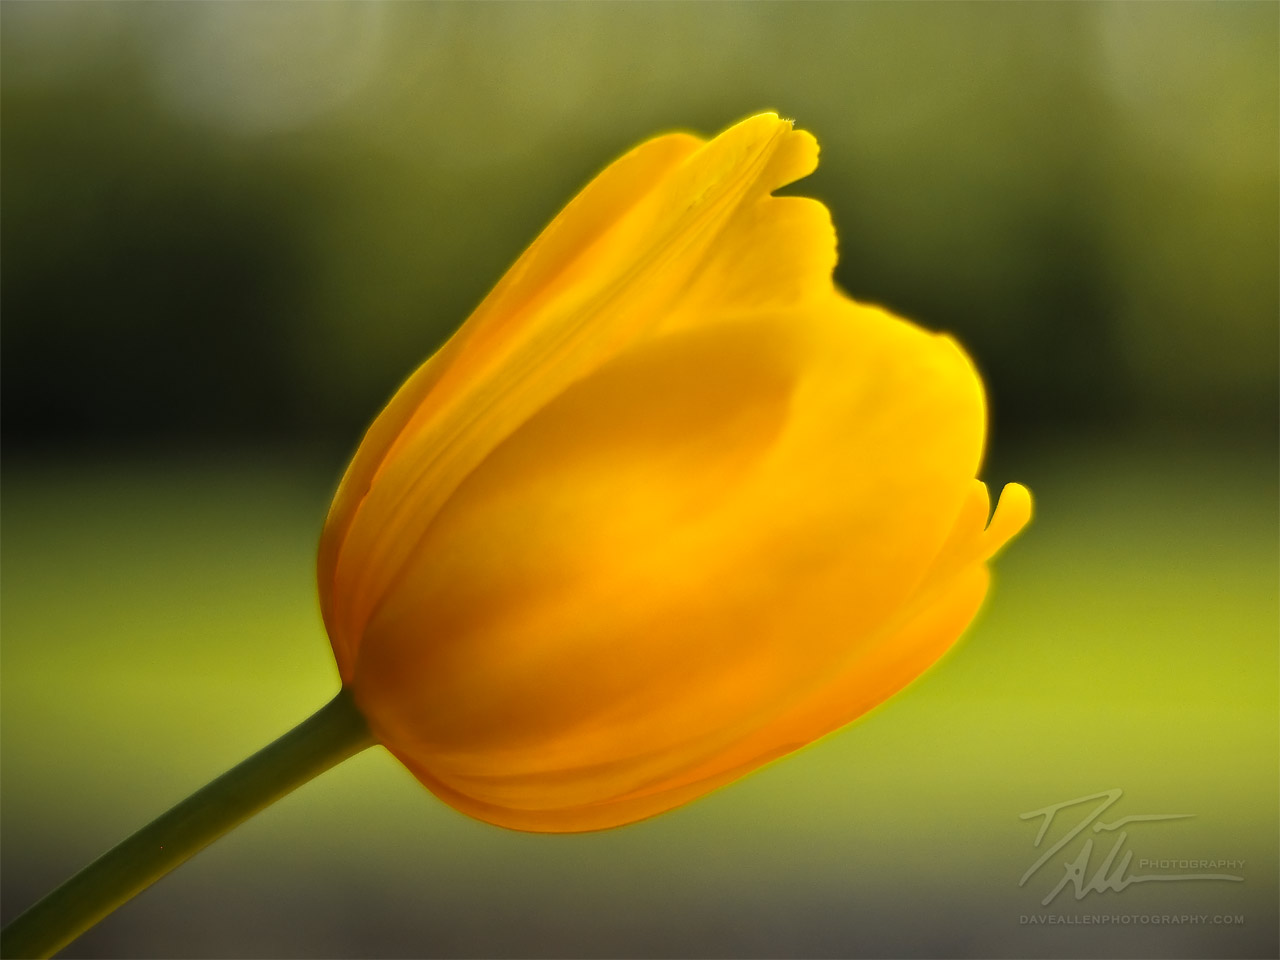 Flowers images yellow tulip hd wallpaper and background photos flowers images yellow tulip hd wallpaper and background photos izmirmasajfo